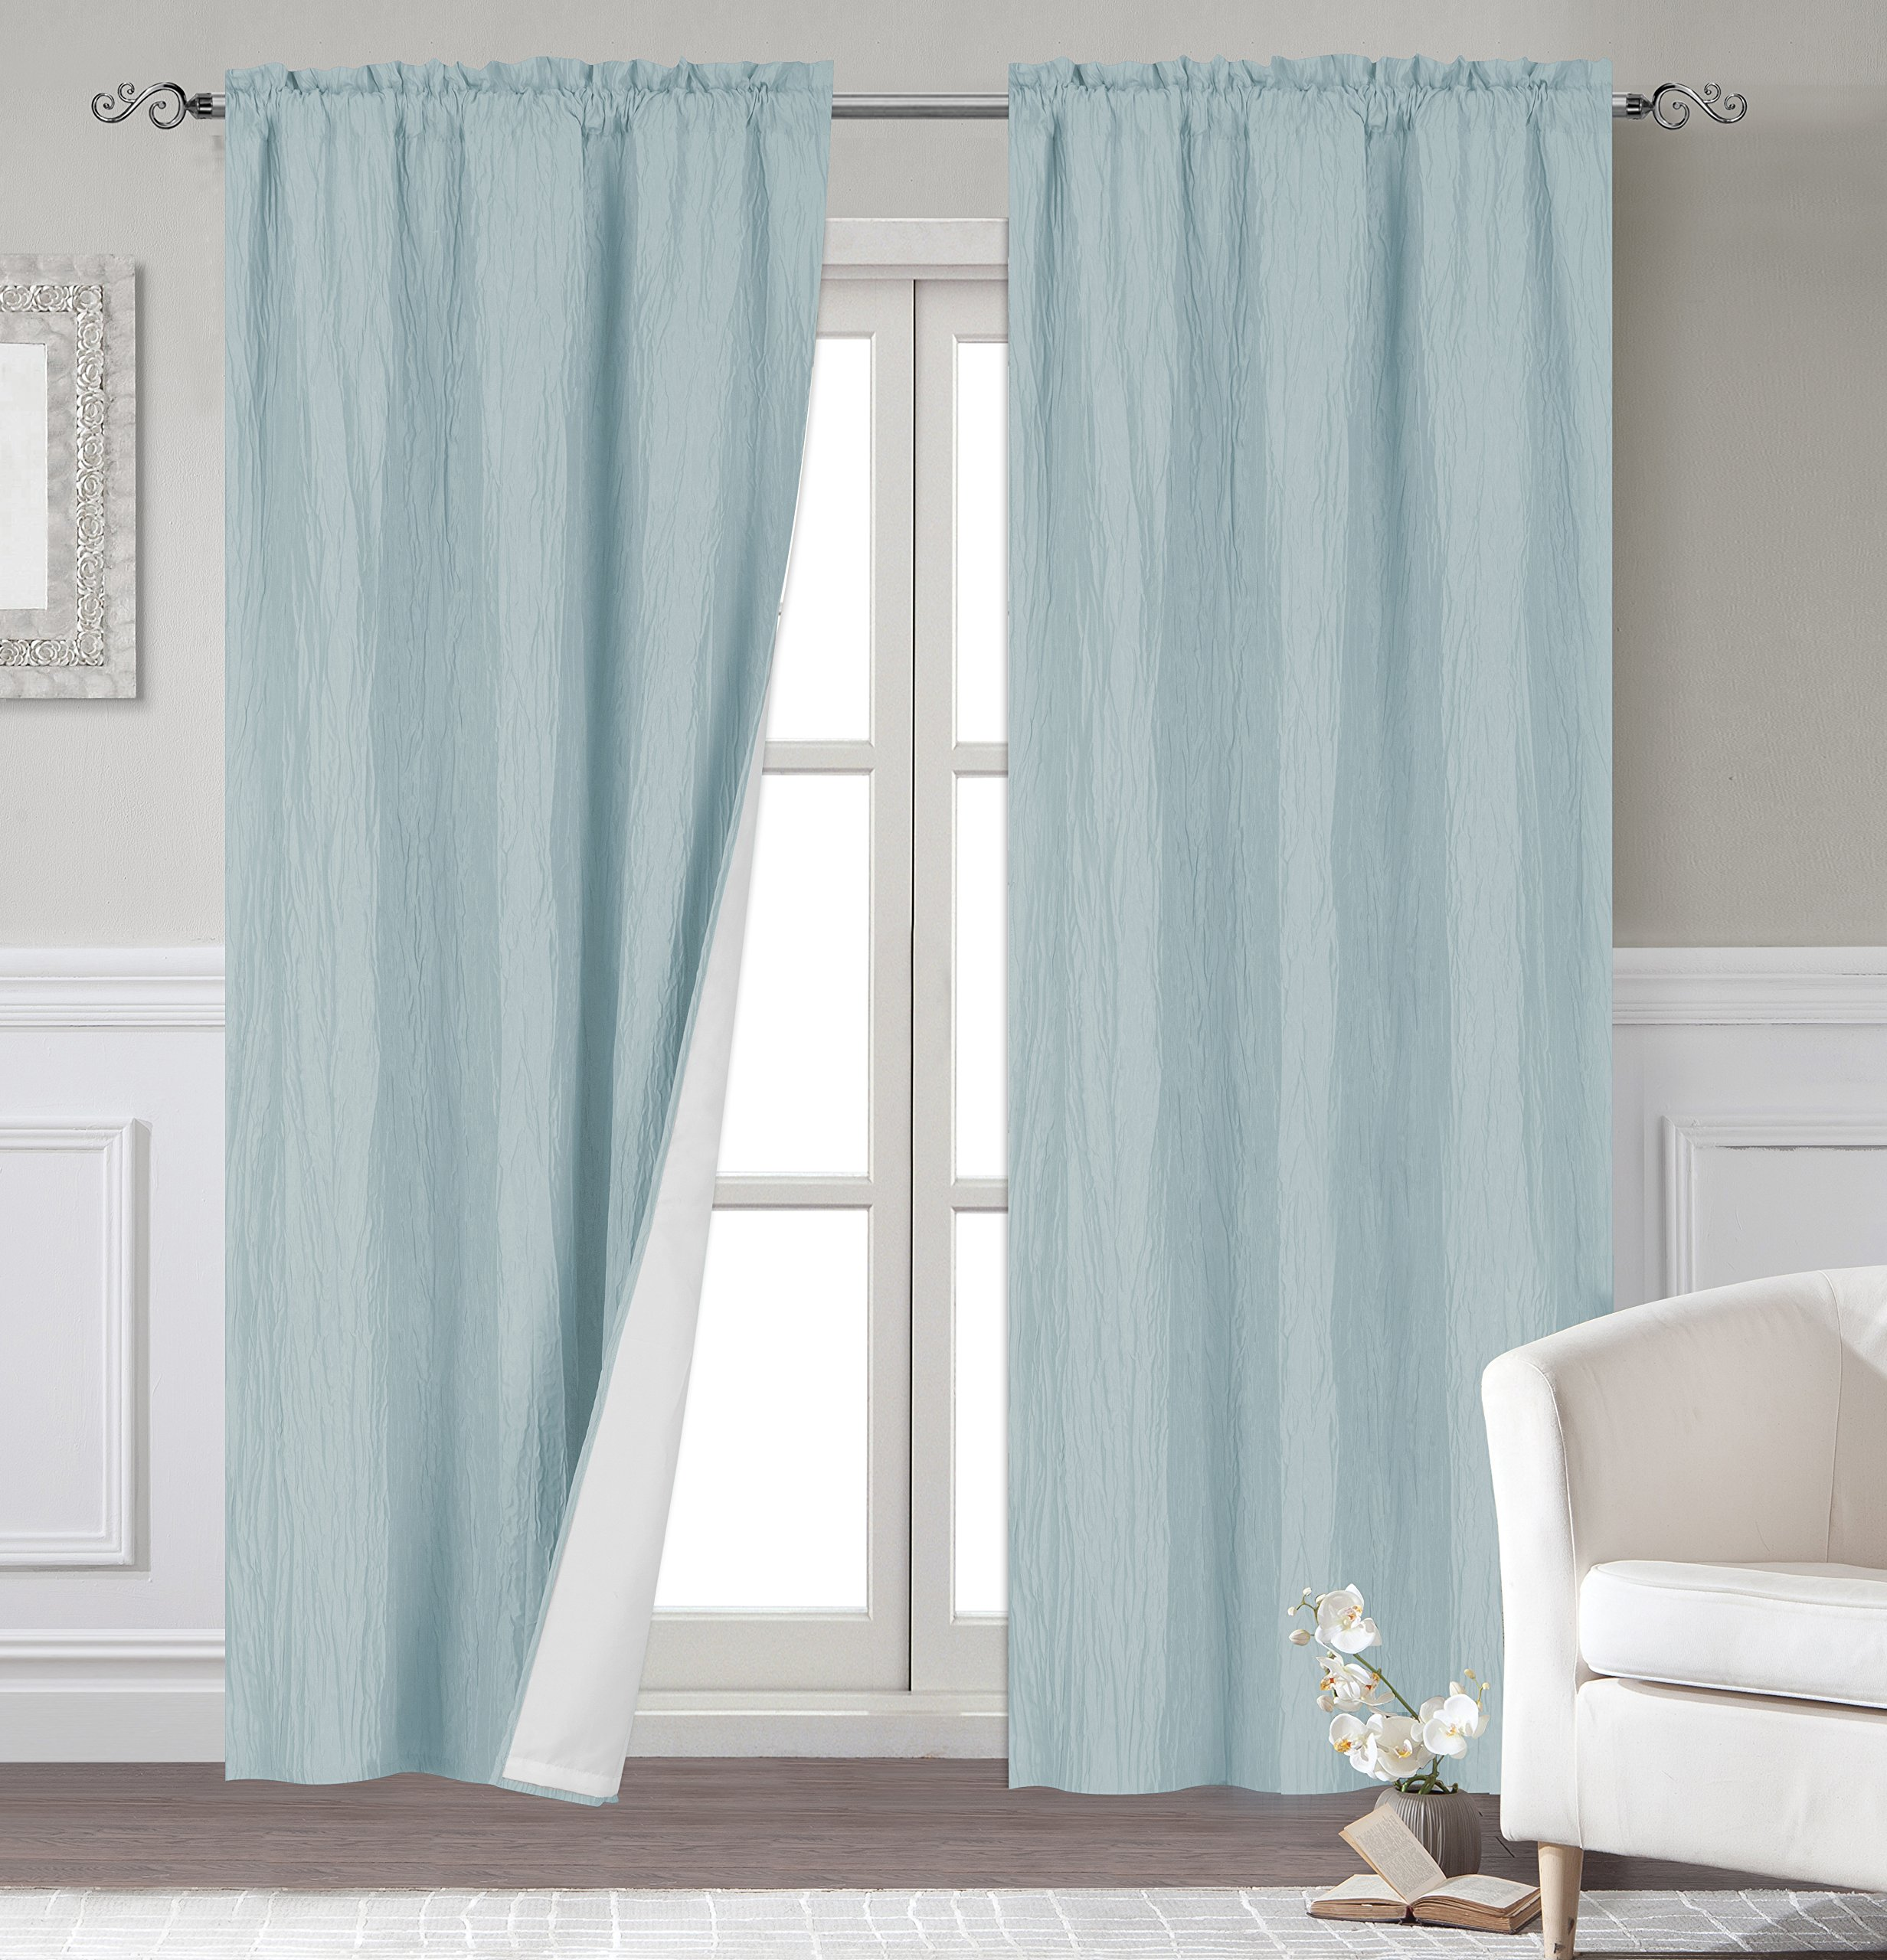 Dainty Home Venetian Blackout Panel Pair with Lining, 76x84'', Spa